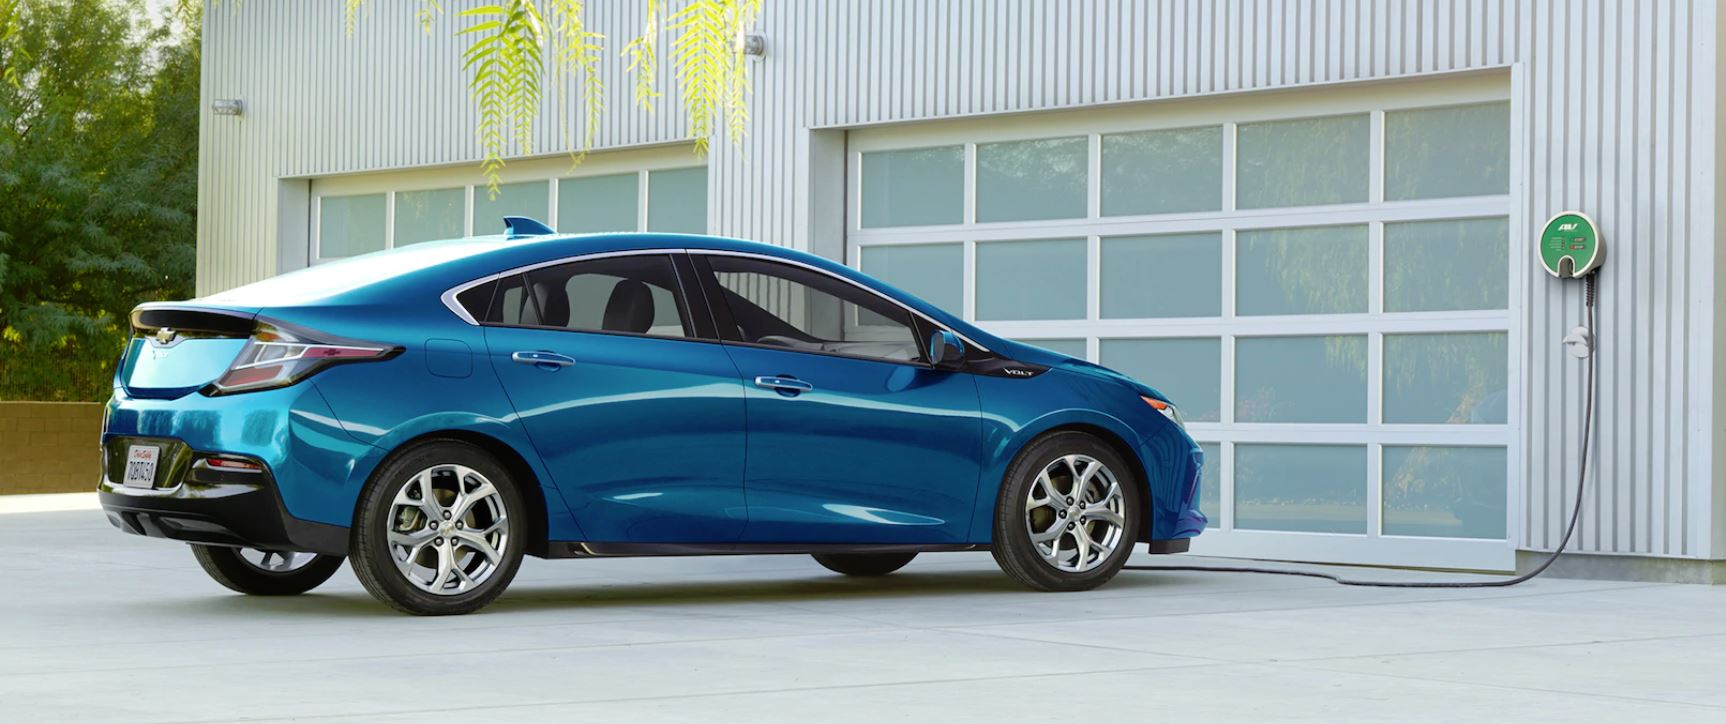 Chevy Volt Lease >> Does Chevy Volt Stop In 2019 Glendora Chevy Volt Dealer